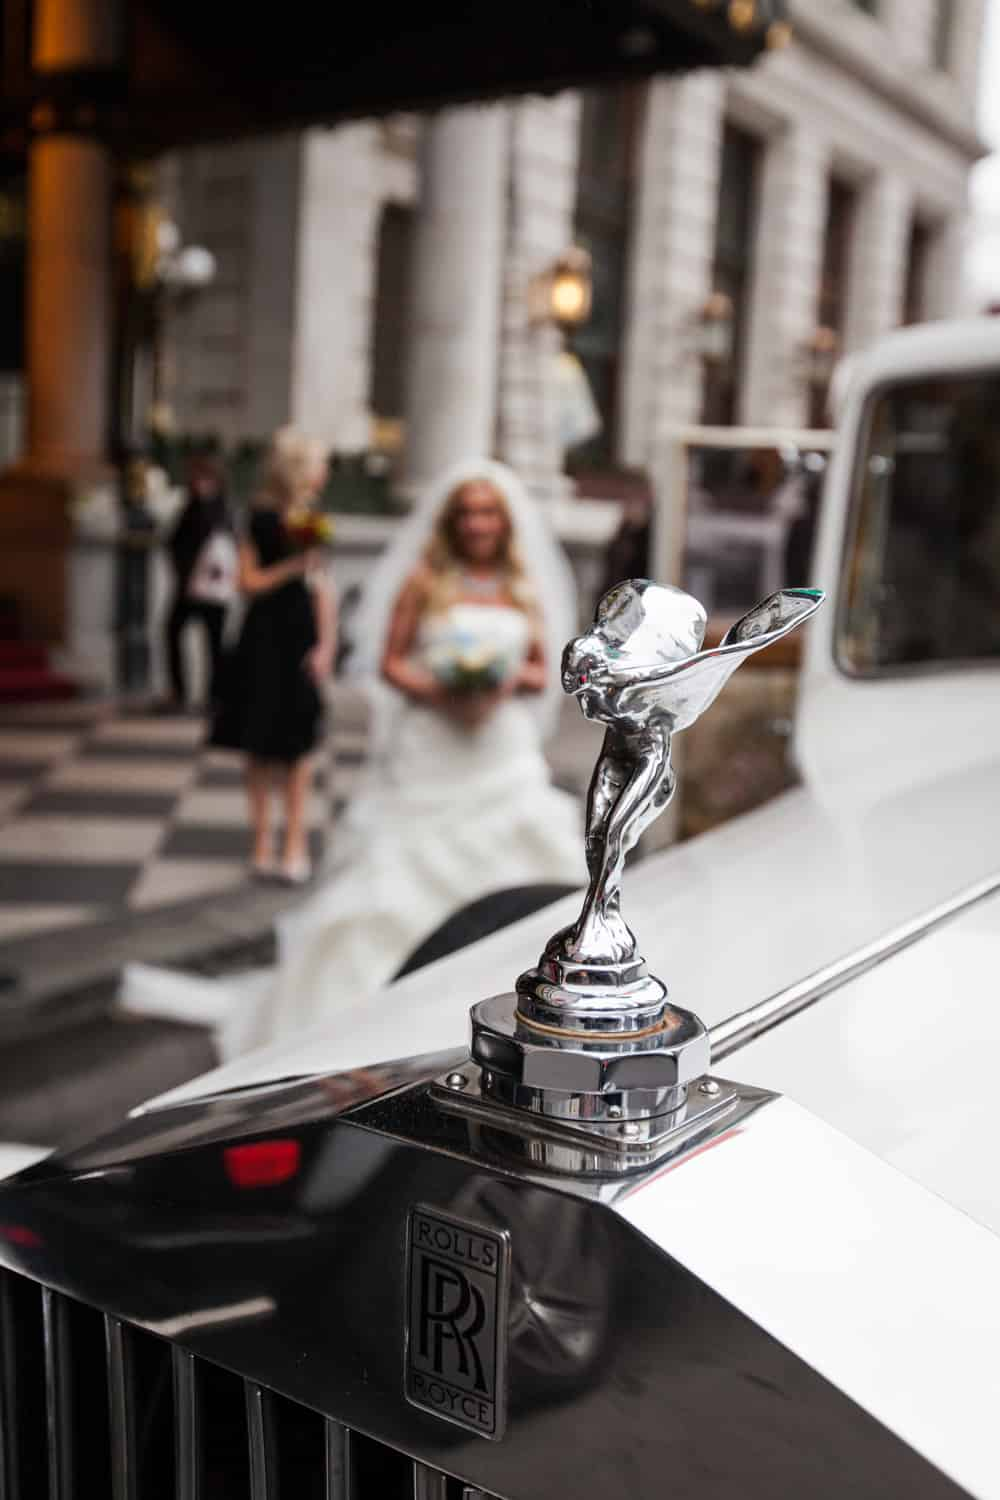 Rolls Royce car mascot with bride in background